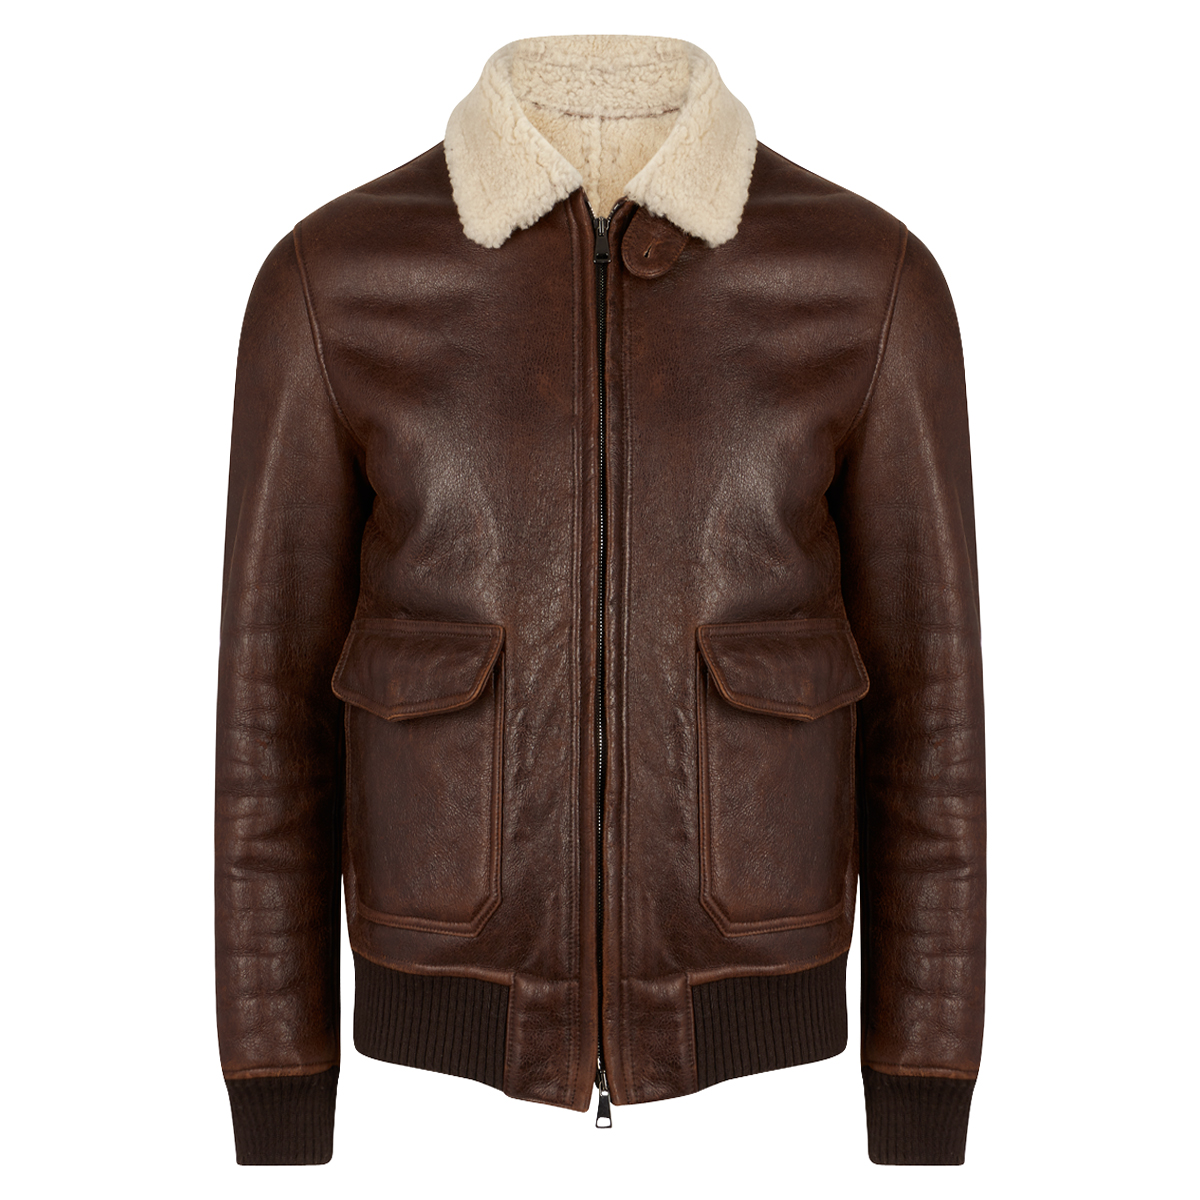 Dark Brown Sheepskin Vintage Jacket